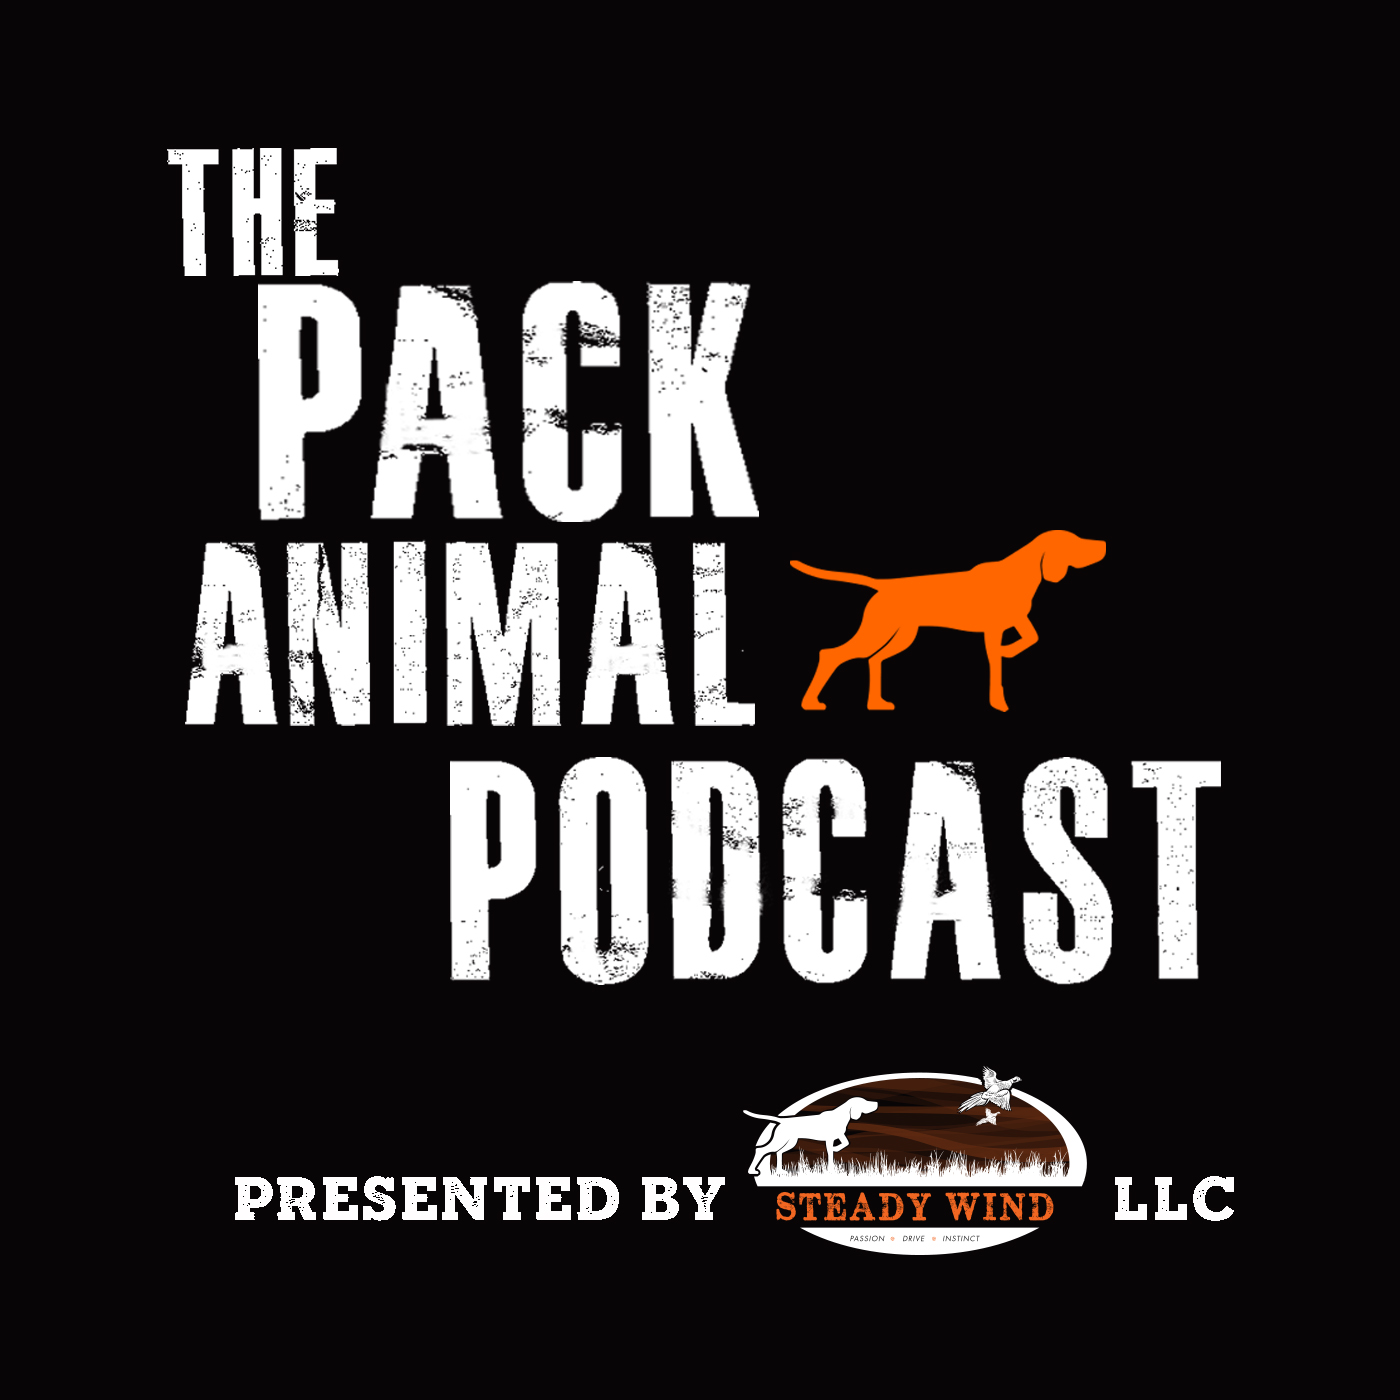 The Pack Animal Podcast